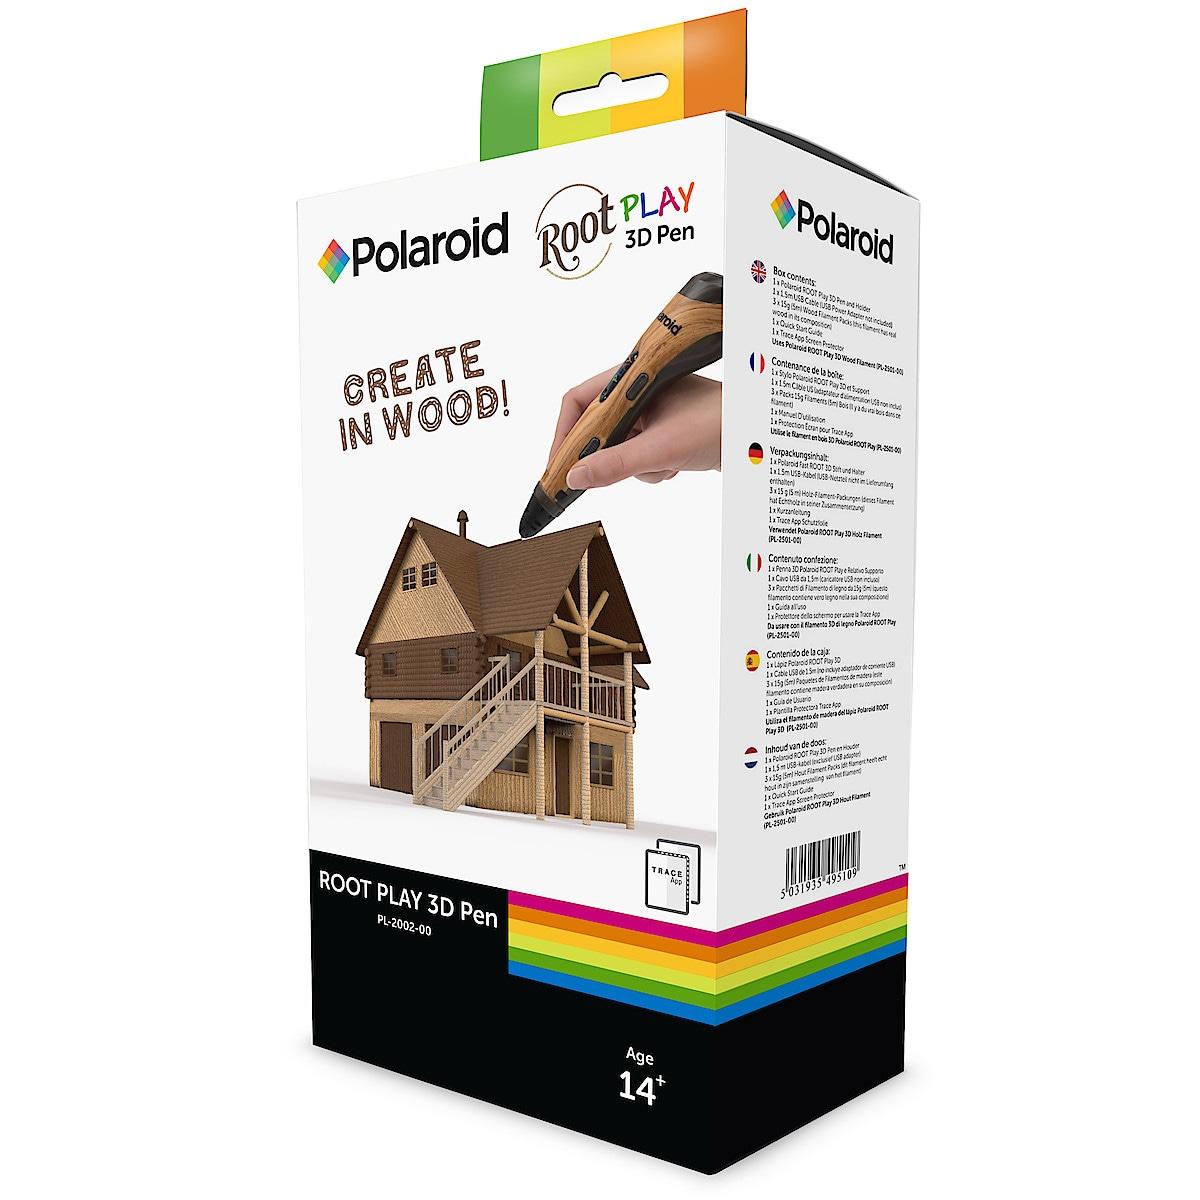 3D-penna Polaroid Play Root 3D Pen